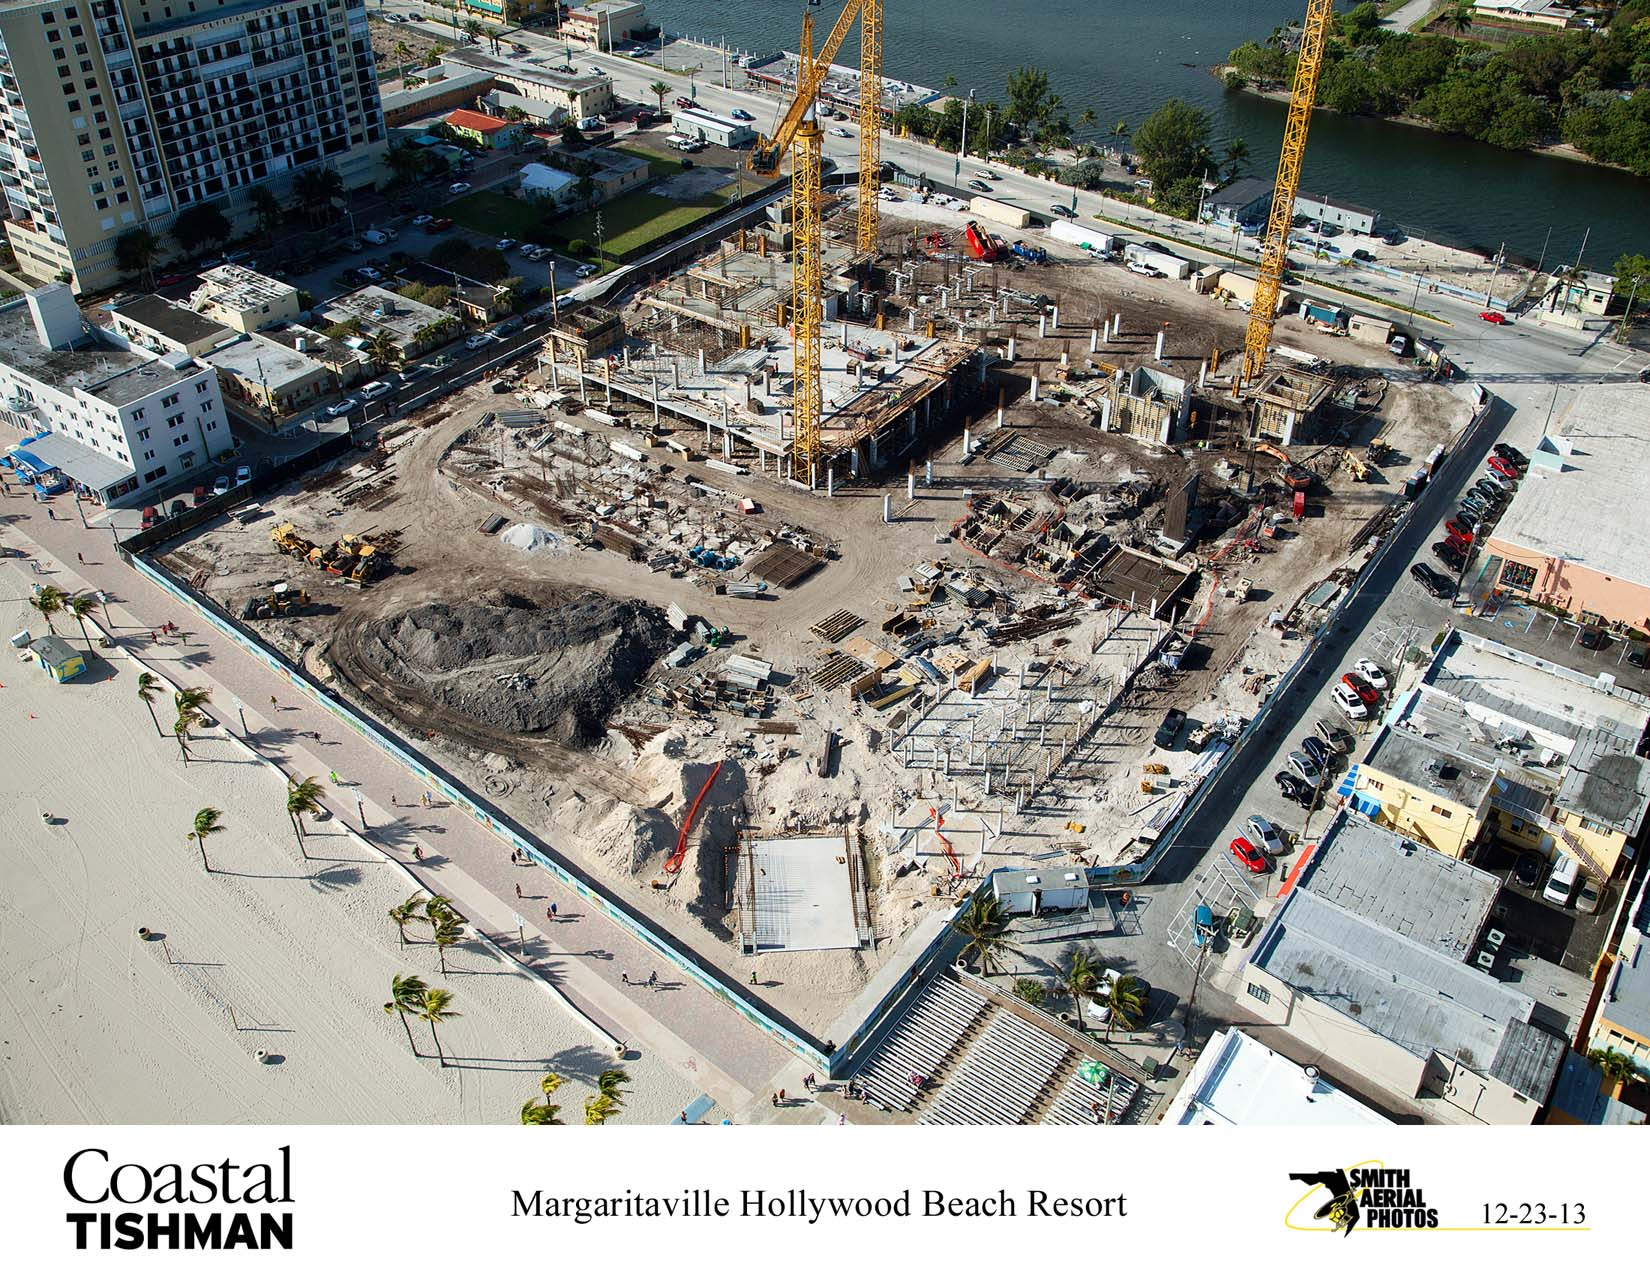 Margaritaville Construction Dec 13 - 4